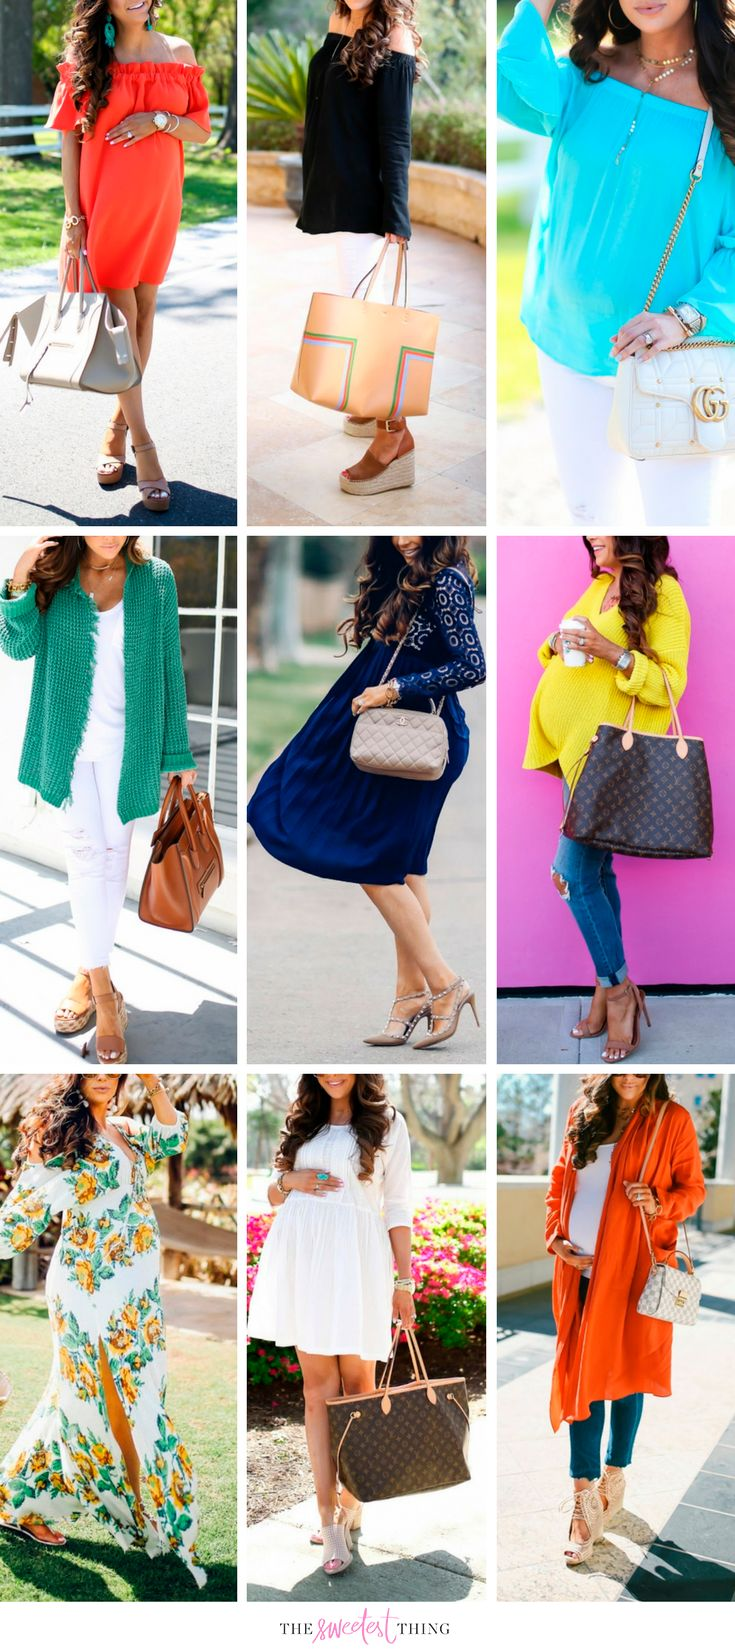 Summer and Spring outfits that I wore last year. Fashion for Women, fashion style, louis vuitton, gucci bag, chanel bag, denim, fashion trends, summer style, spring style, fashion inspiration, fashion, popular looks, popular outfits, fashion dresses, summer dress, Emily ann Gemma, The Sweetest Thing Blog. #EmilyAnnGemma #TheSweetestThingBlog #fashion #fashionblogger #womenfashion #summerstyle